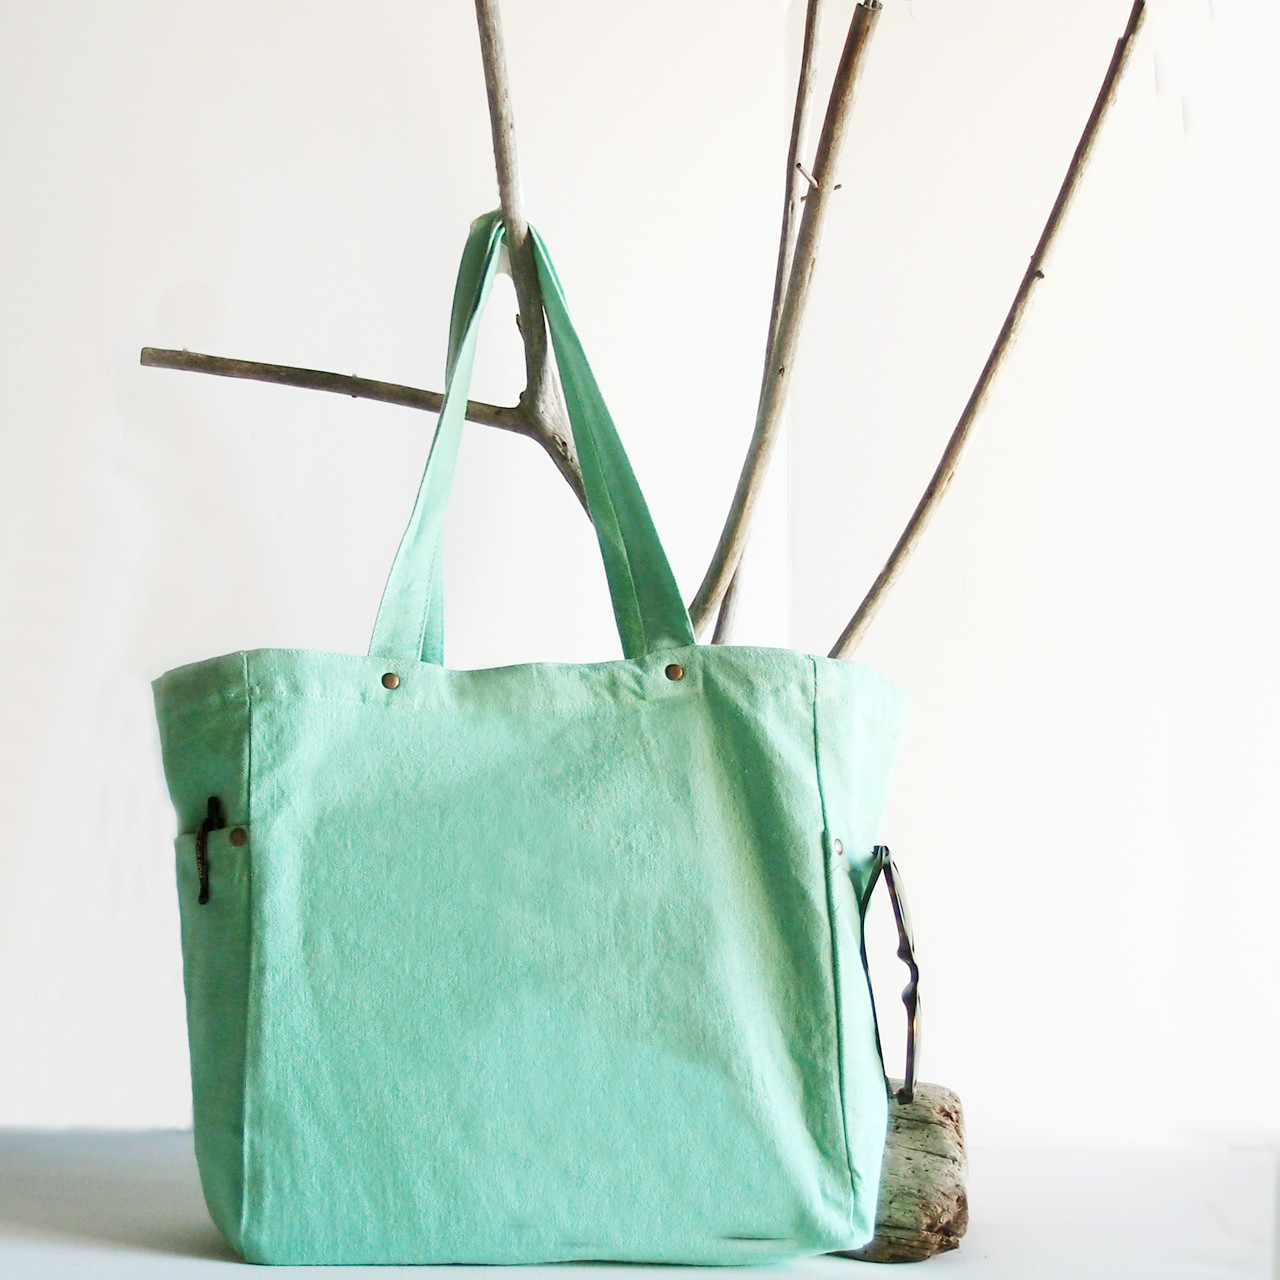 Washed Canvas Tote Bag with Side Pockets Pistachio B798-77, Wholesale Canvas Tote Bags   Packaging Decor